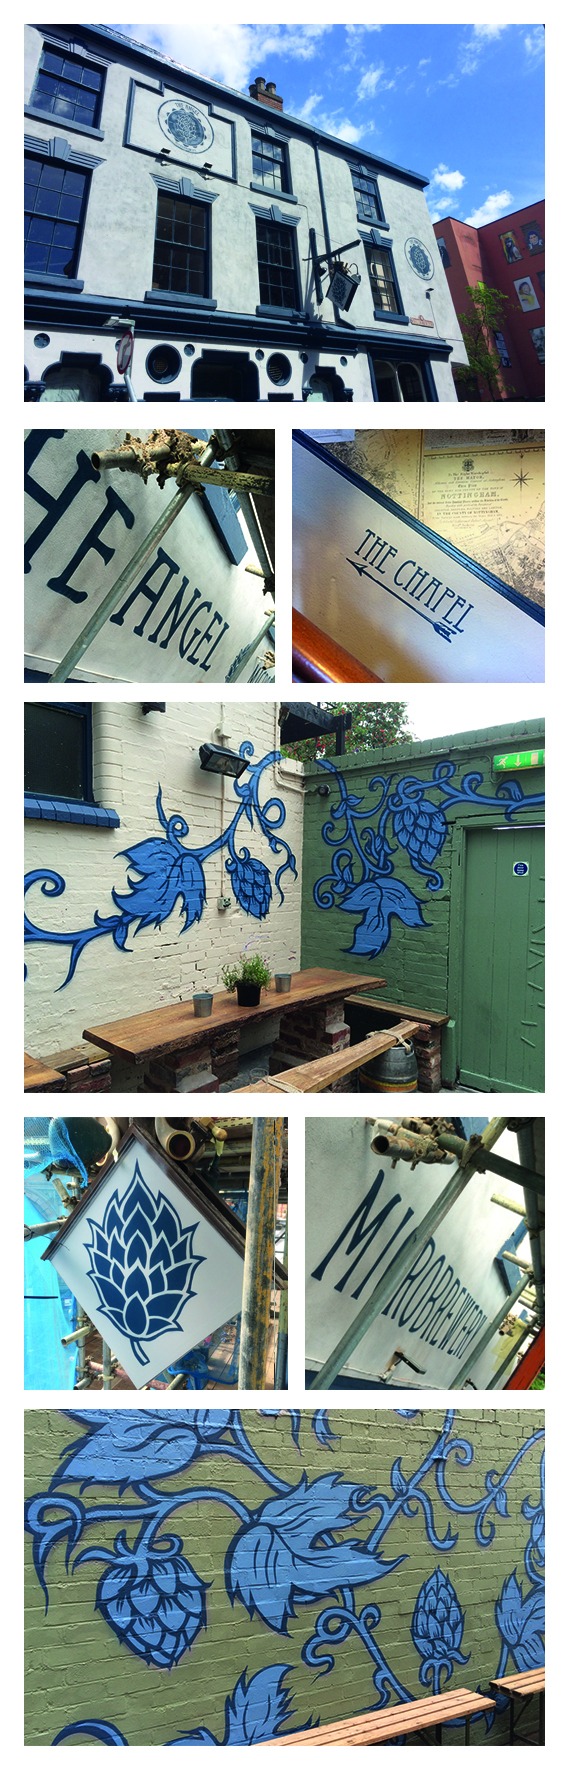 the angel microbrewery nottingham